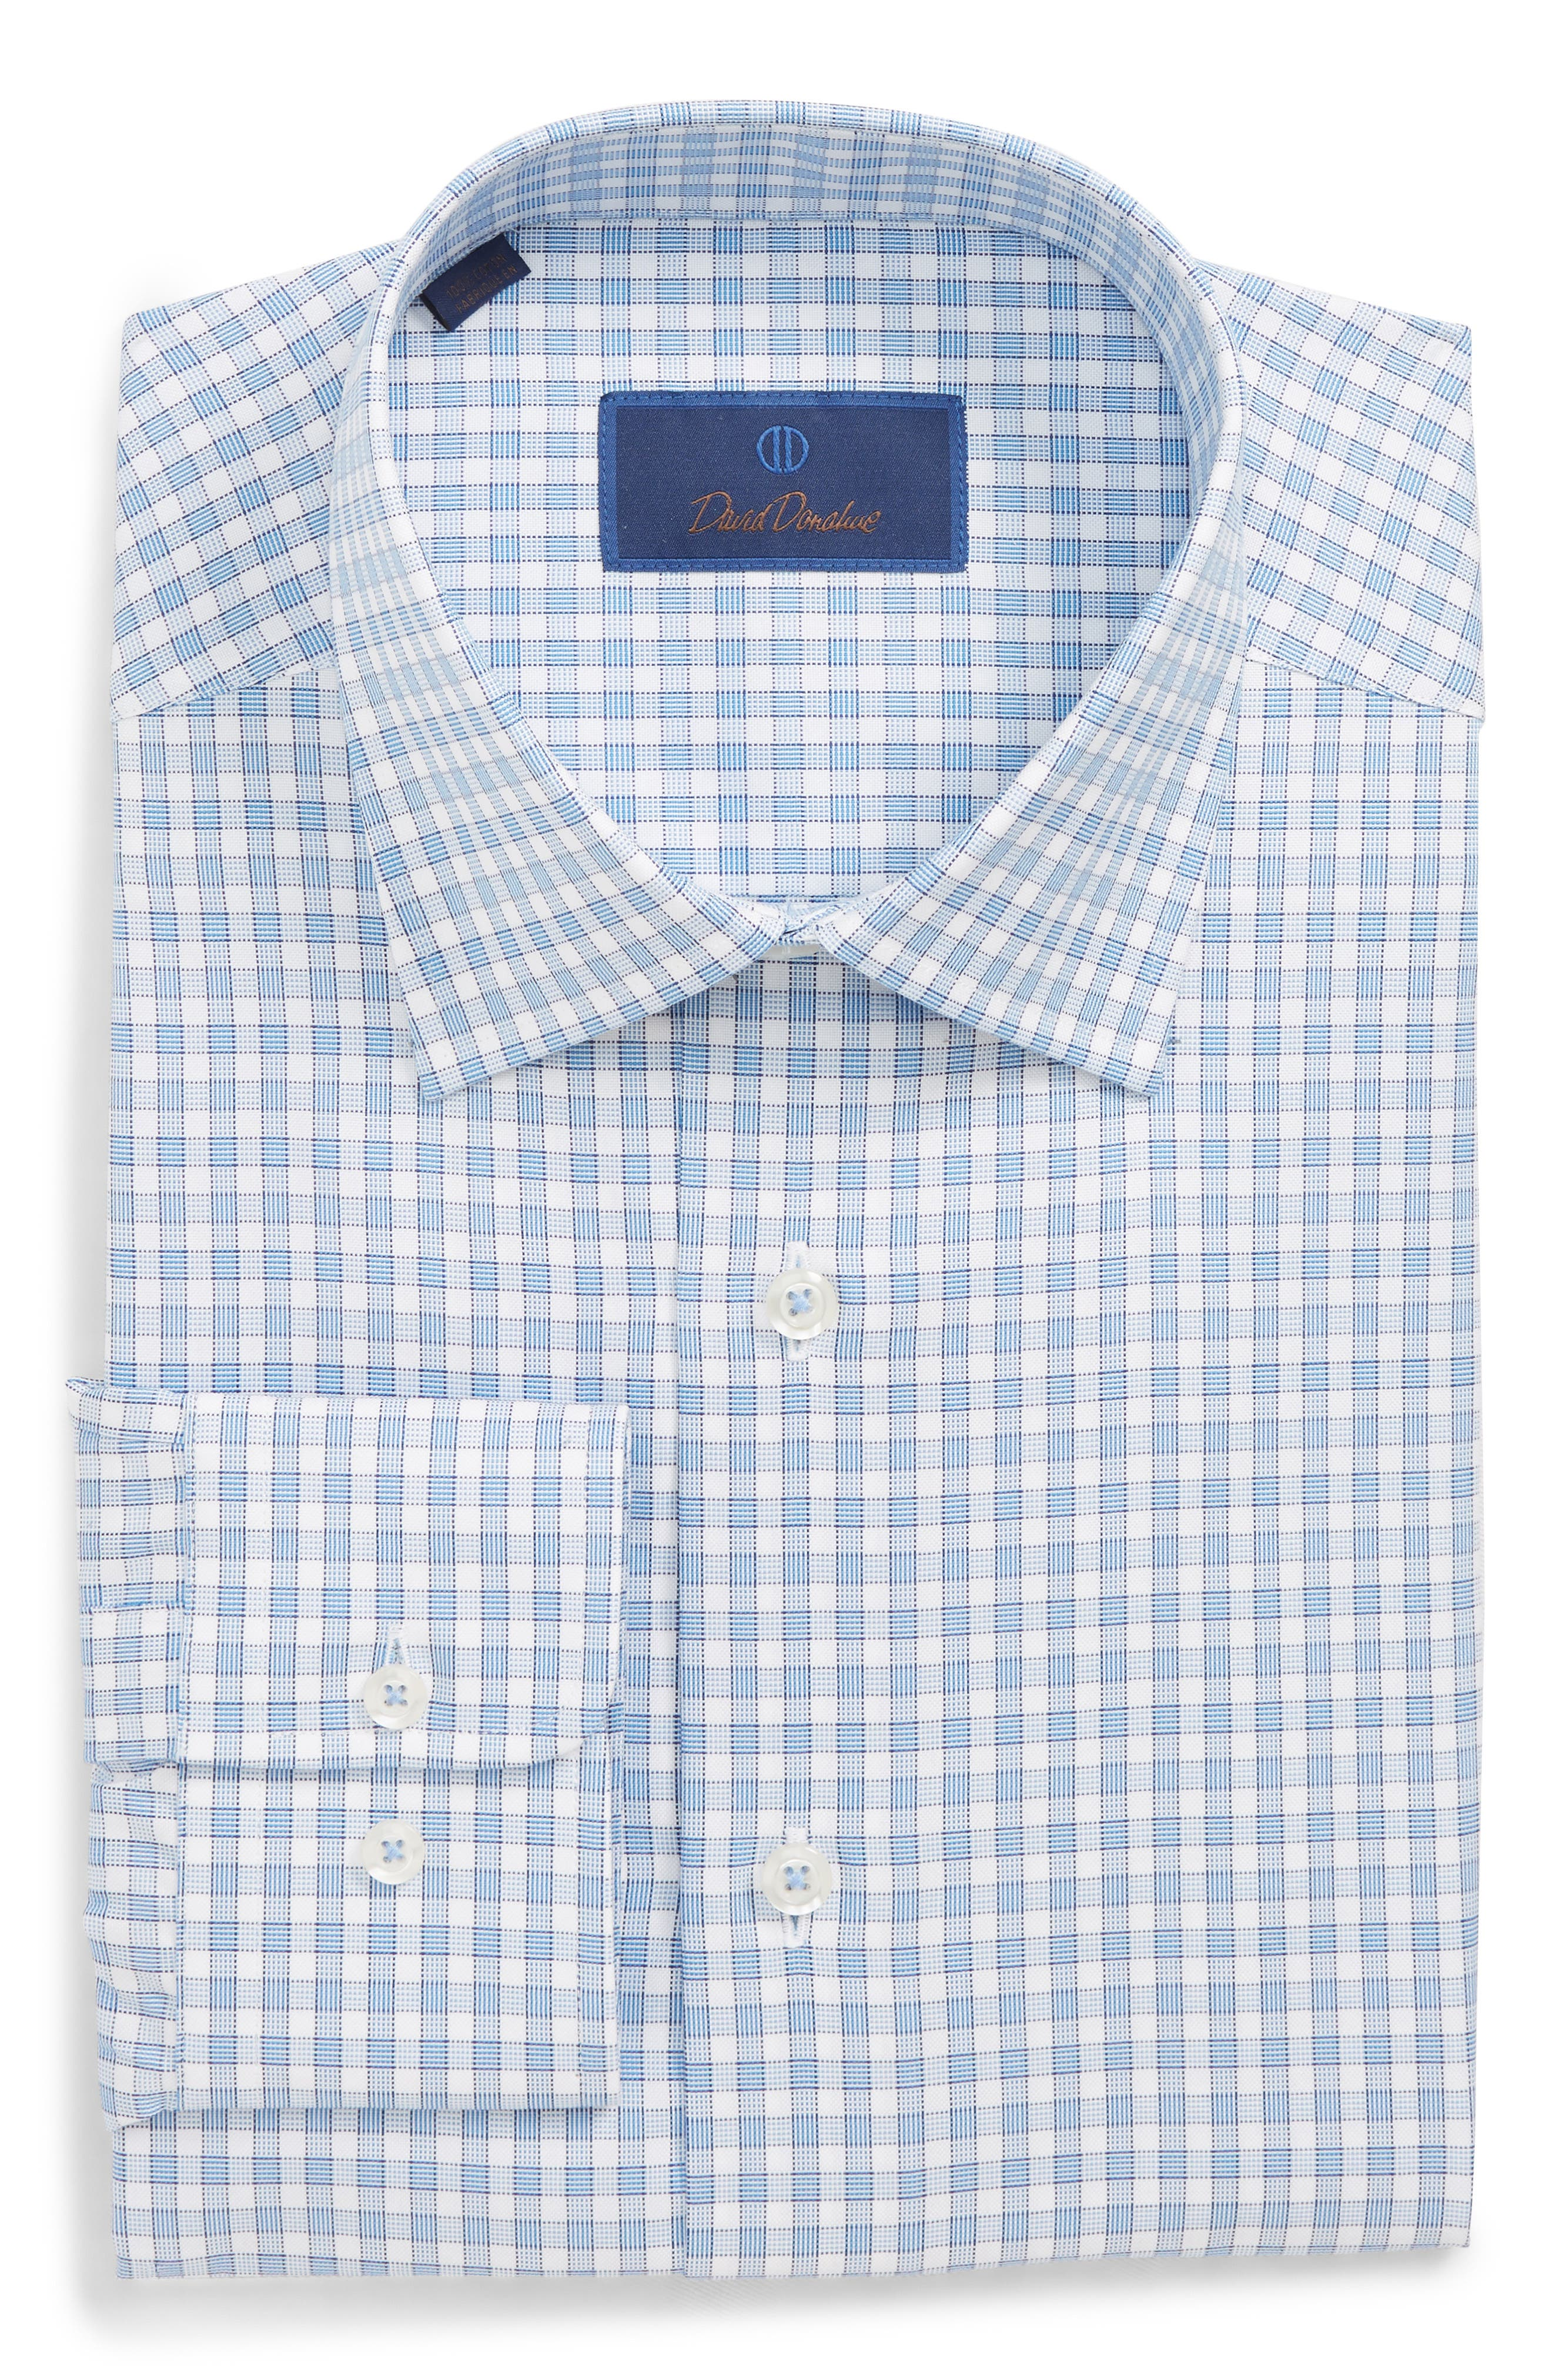 Regular Fit Plaid Dress Shirt,                             Main thumbnail 1, color,                             423